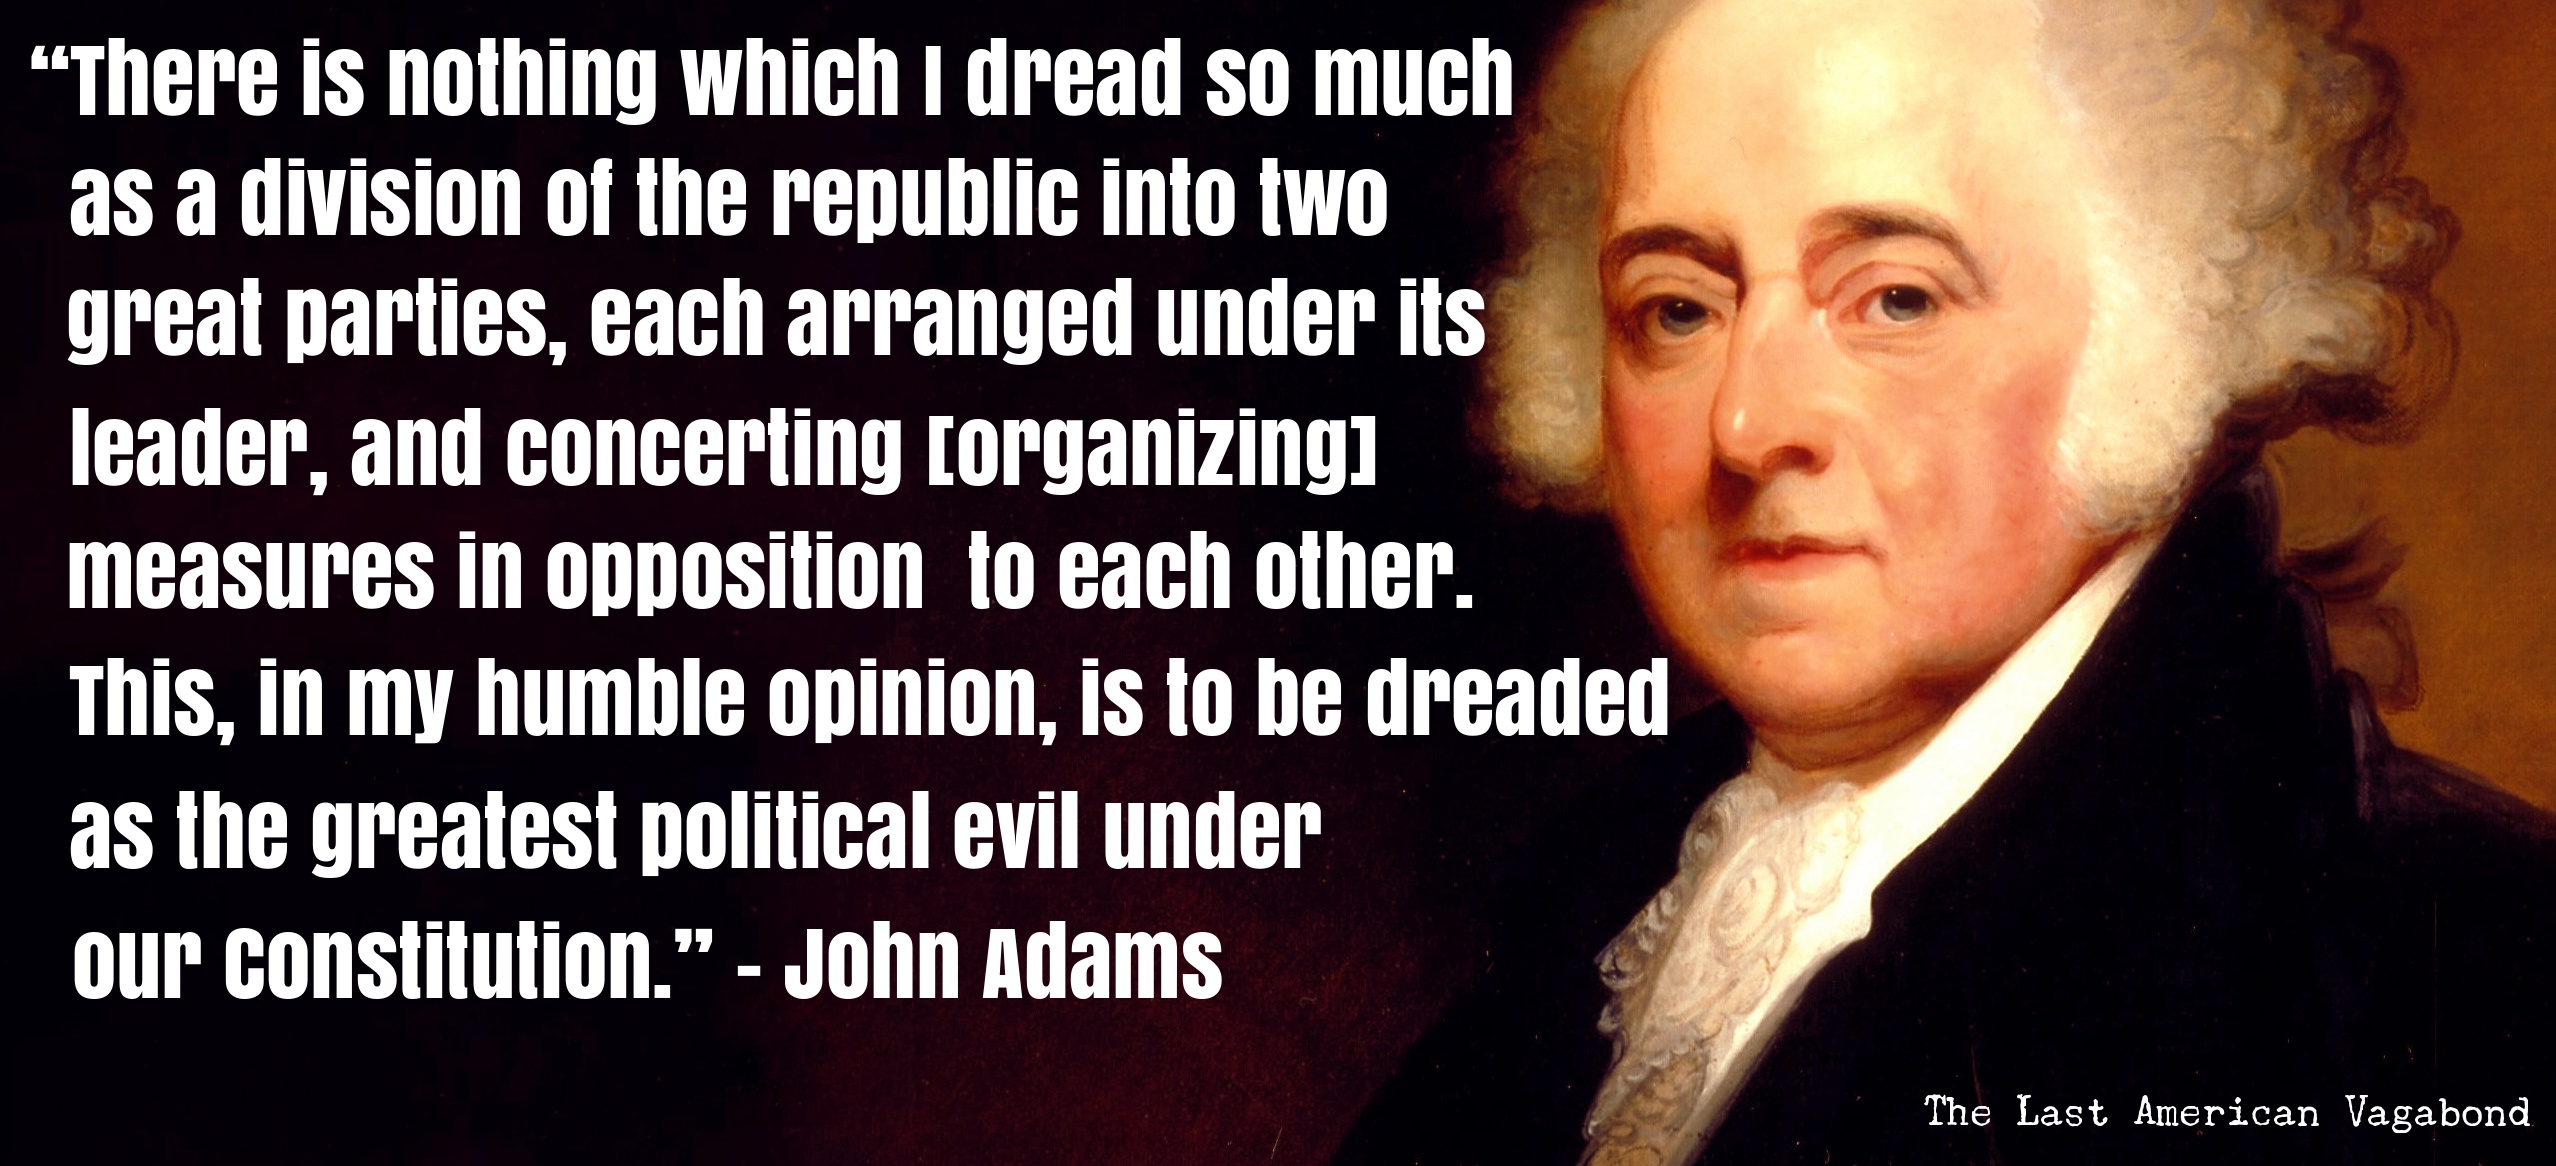 John Adams life changing meme 20 life memes that will change everything in a few seconds